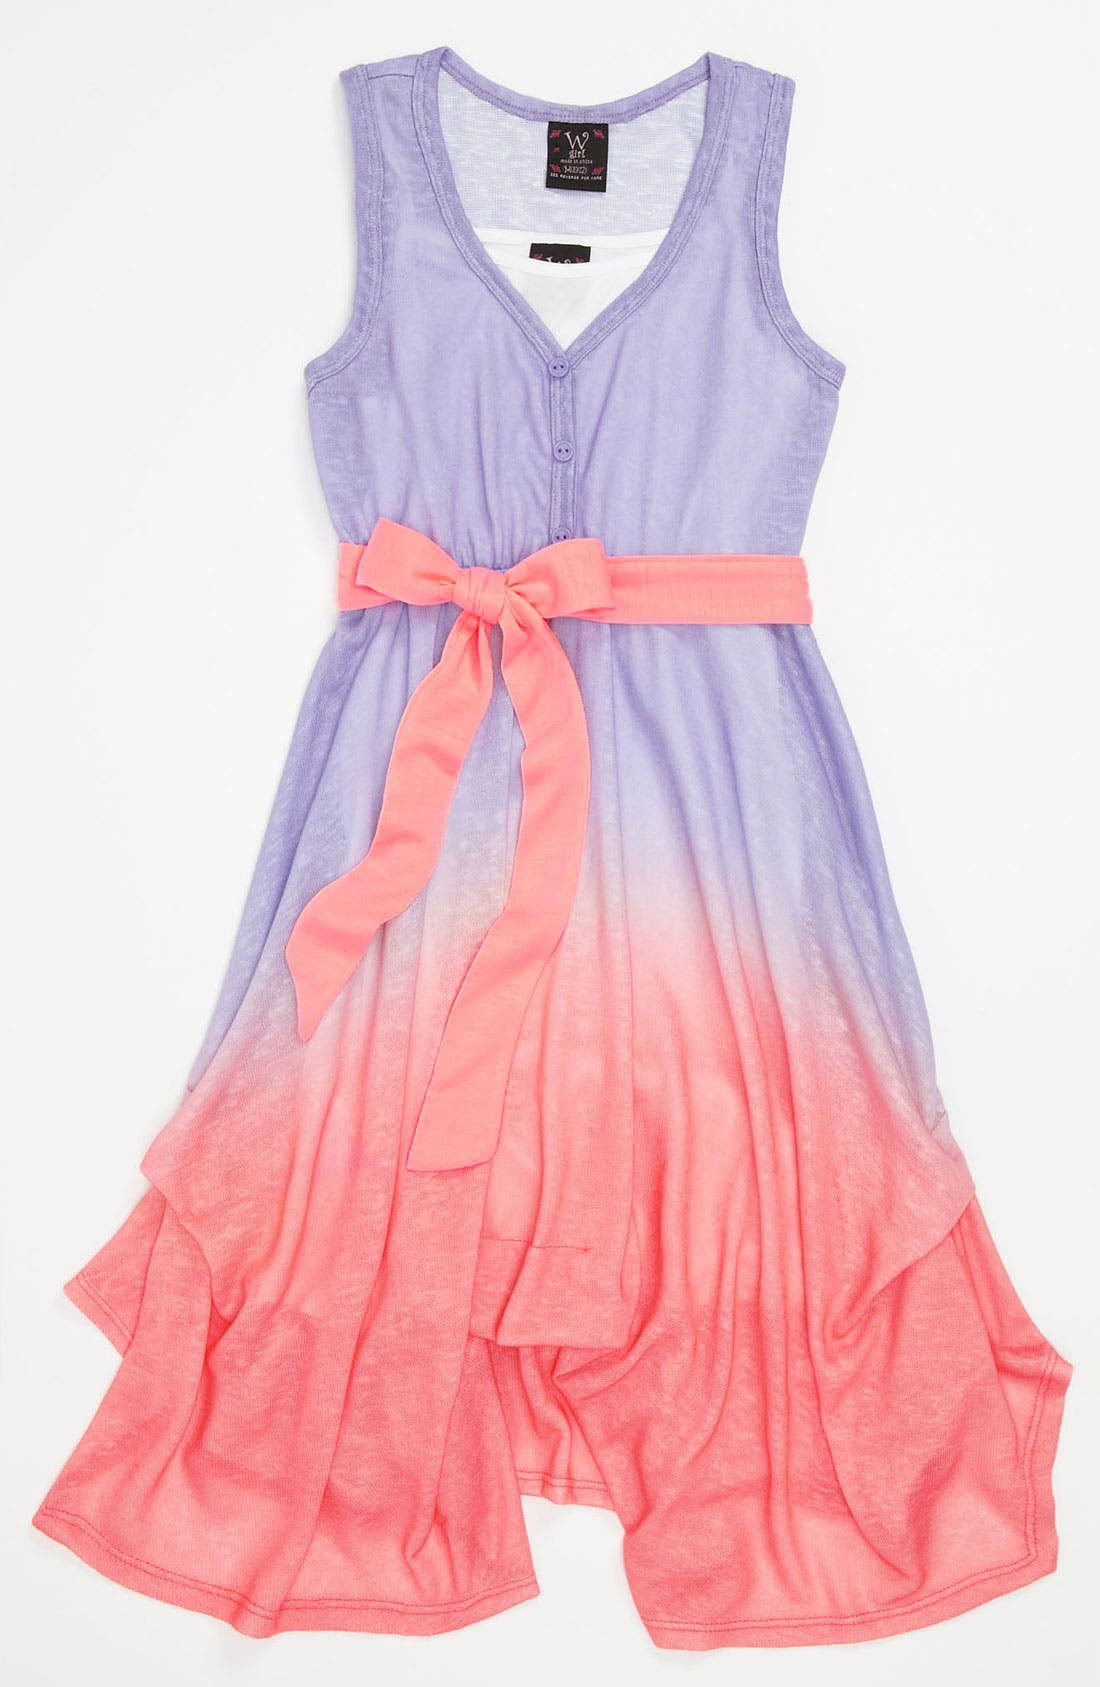 Alternate Image 1 Selected - W Girl Ombré Dress (Little Girls & Big Girls)